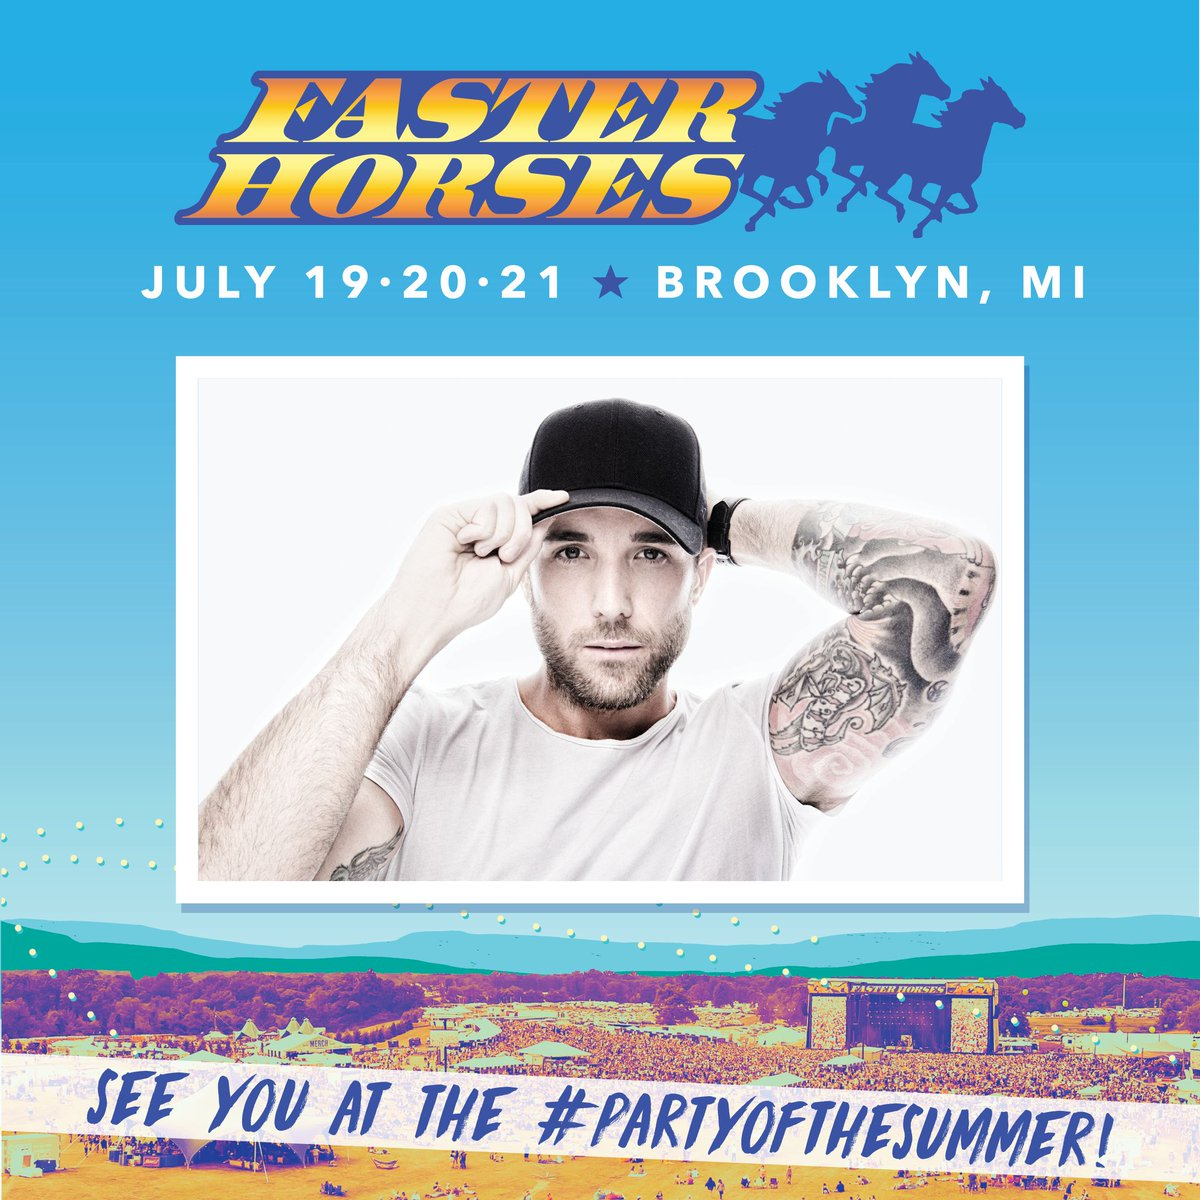 Tyler Rich's photo on Faster Horses